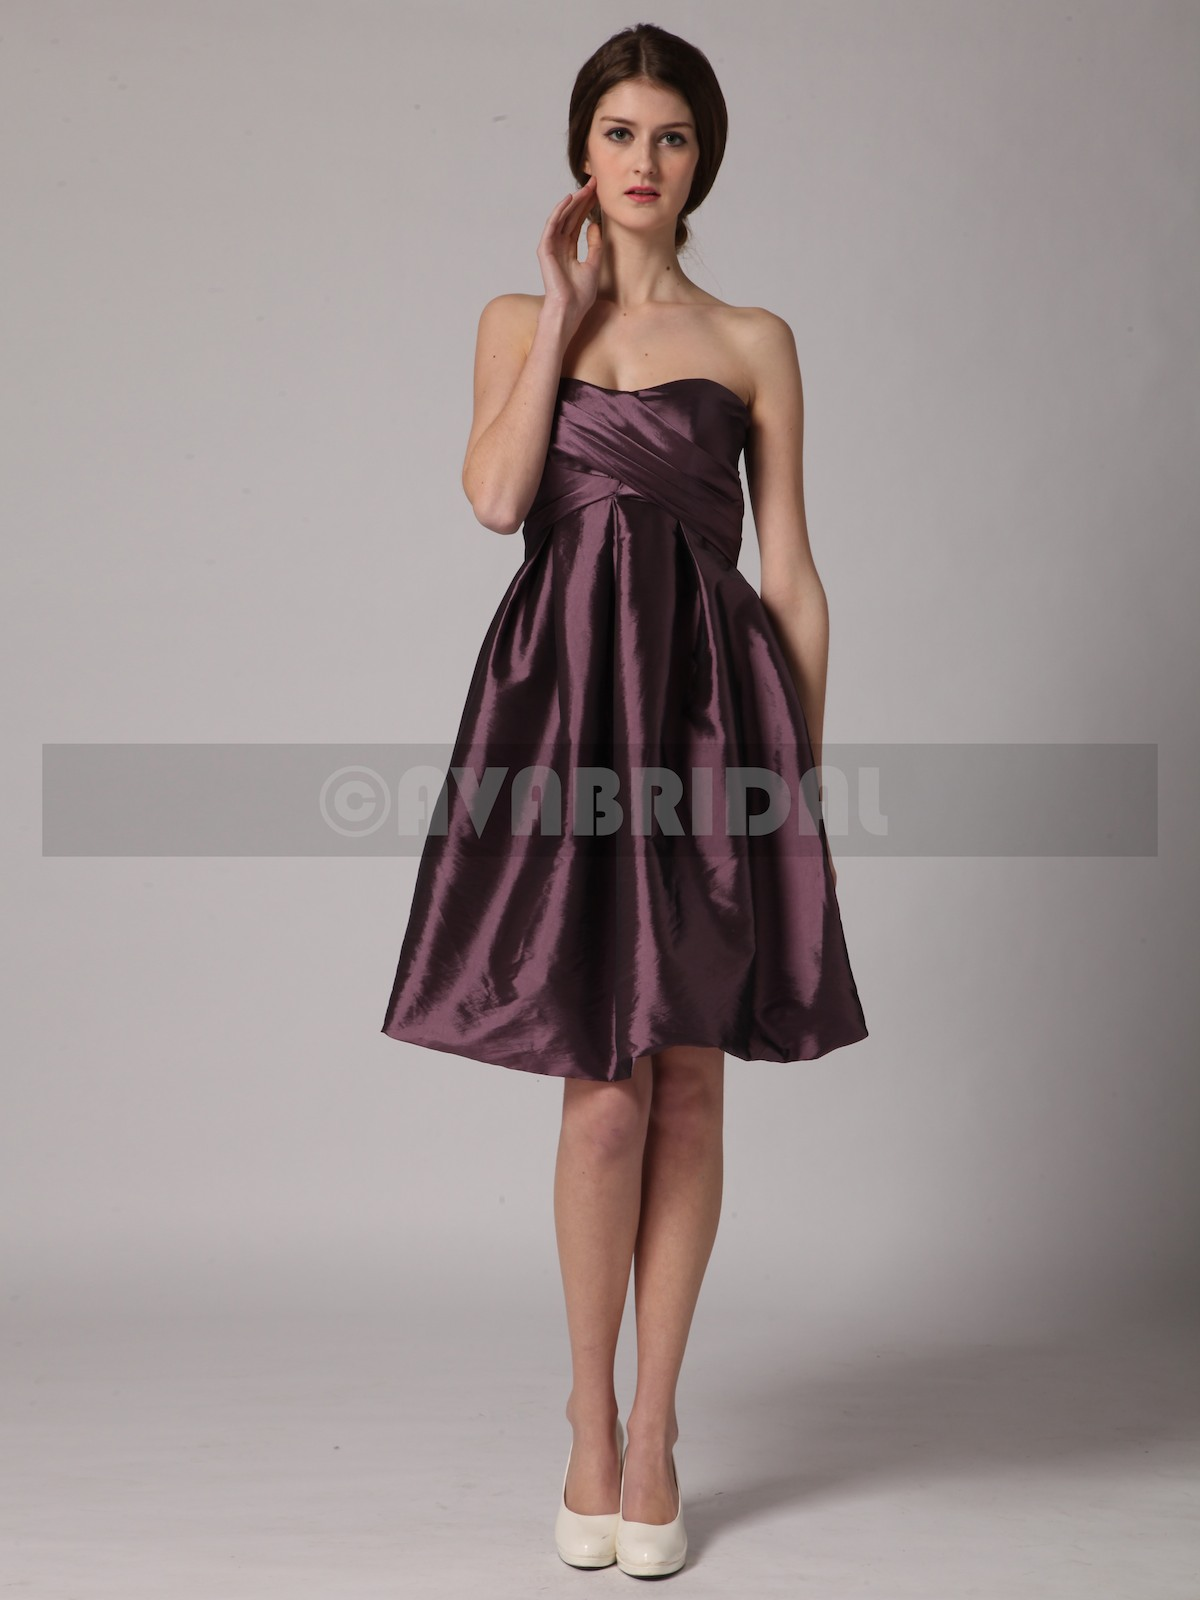 A-line Sweetheart Empire Waist Taffeta Bridesmaid Dress B445-Front